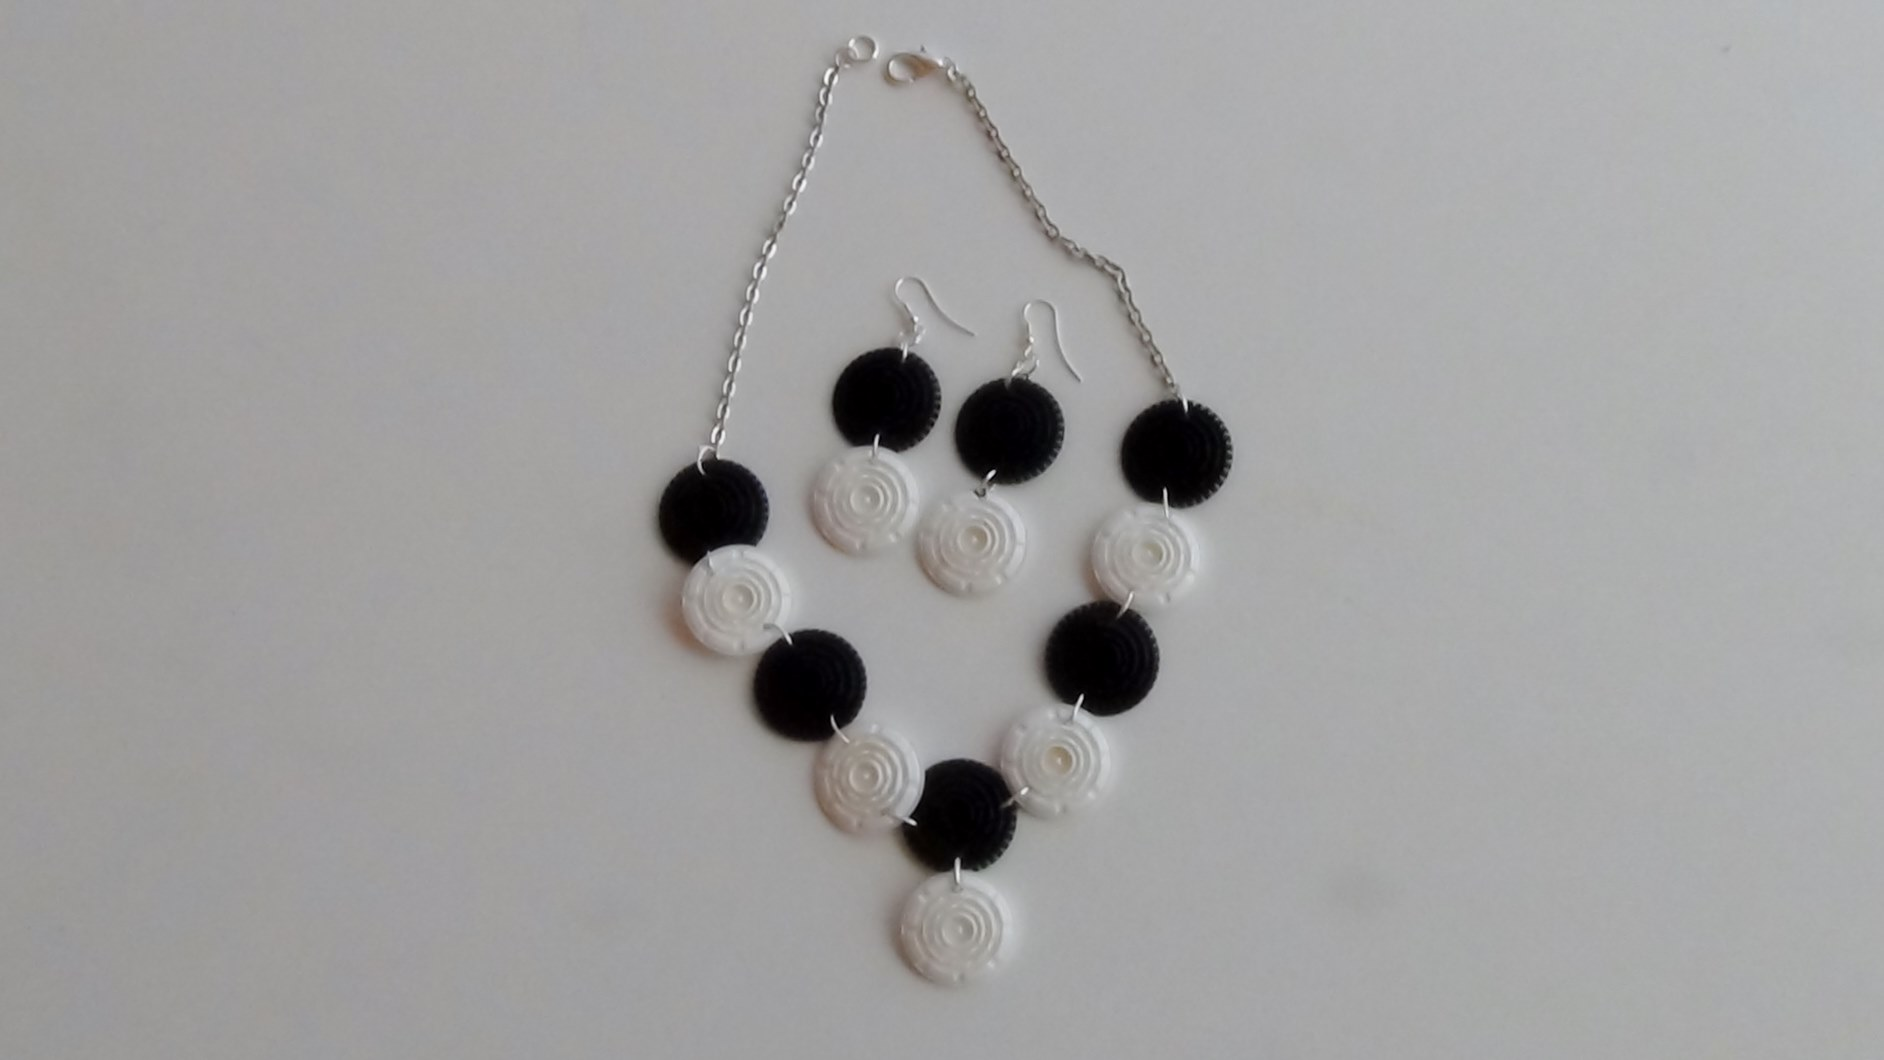 Collar y pendientes realizados con filtros de cápsulas de café Dolce Gusto - Black and white earrings and collant